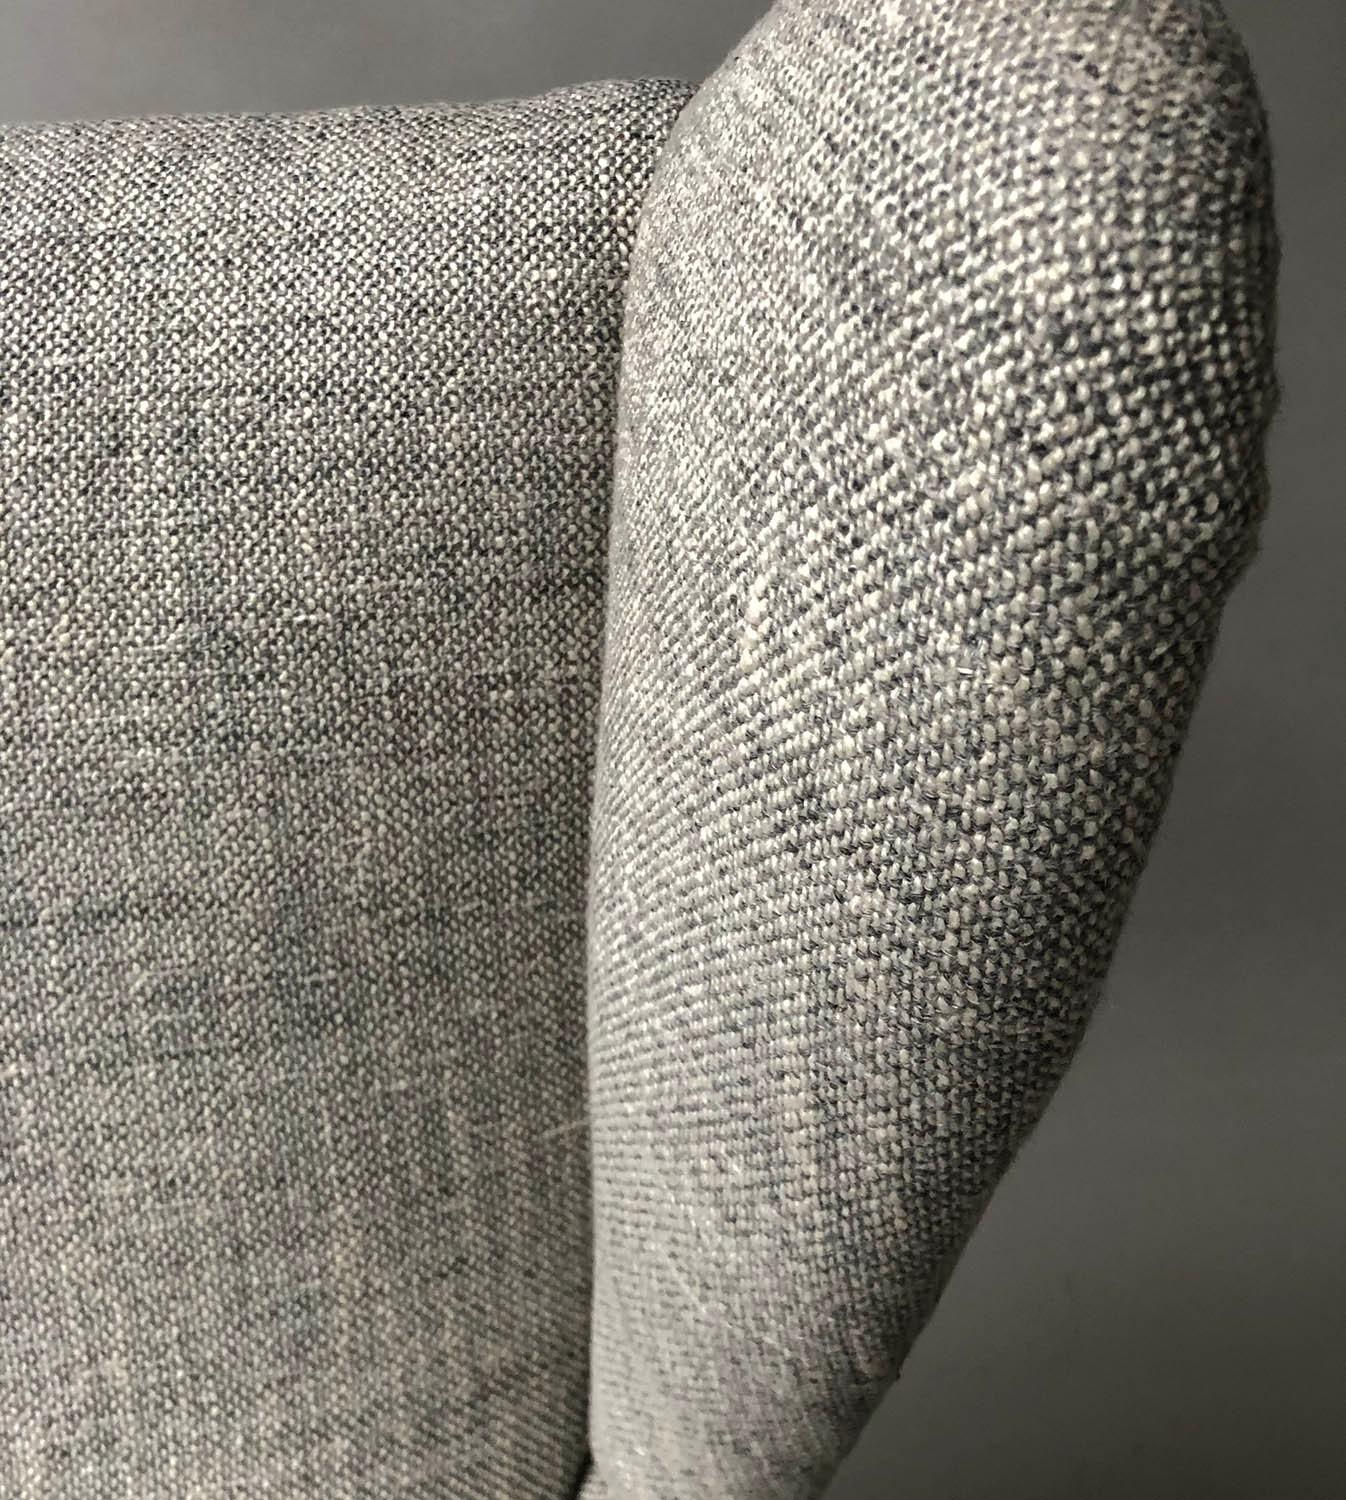 HOWARD KEITH ARMCHAIR, 1950's lounge chair newly upholstered in oatmeal soft tweed with splay - Image 3 of 5